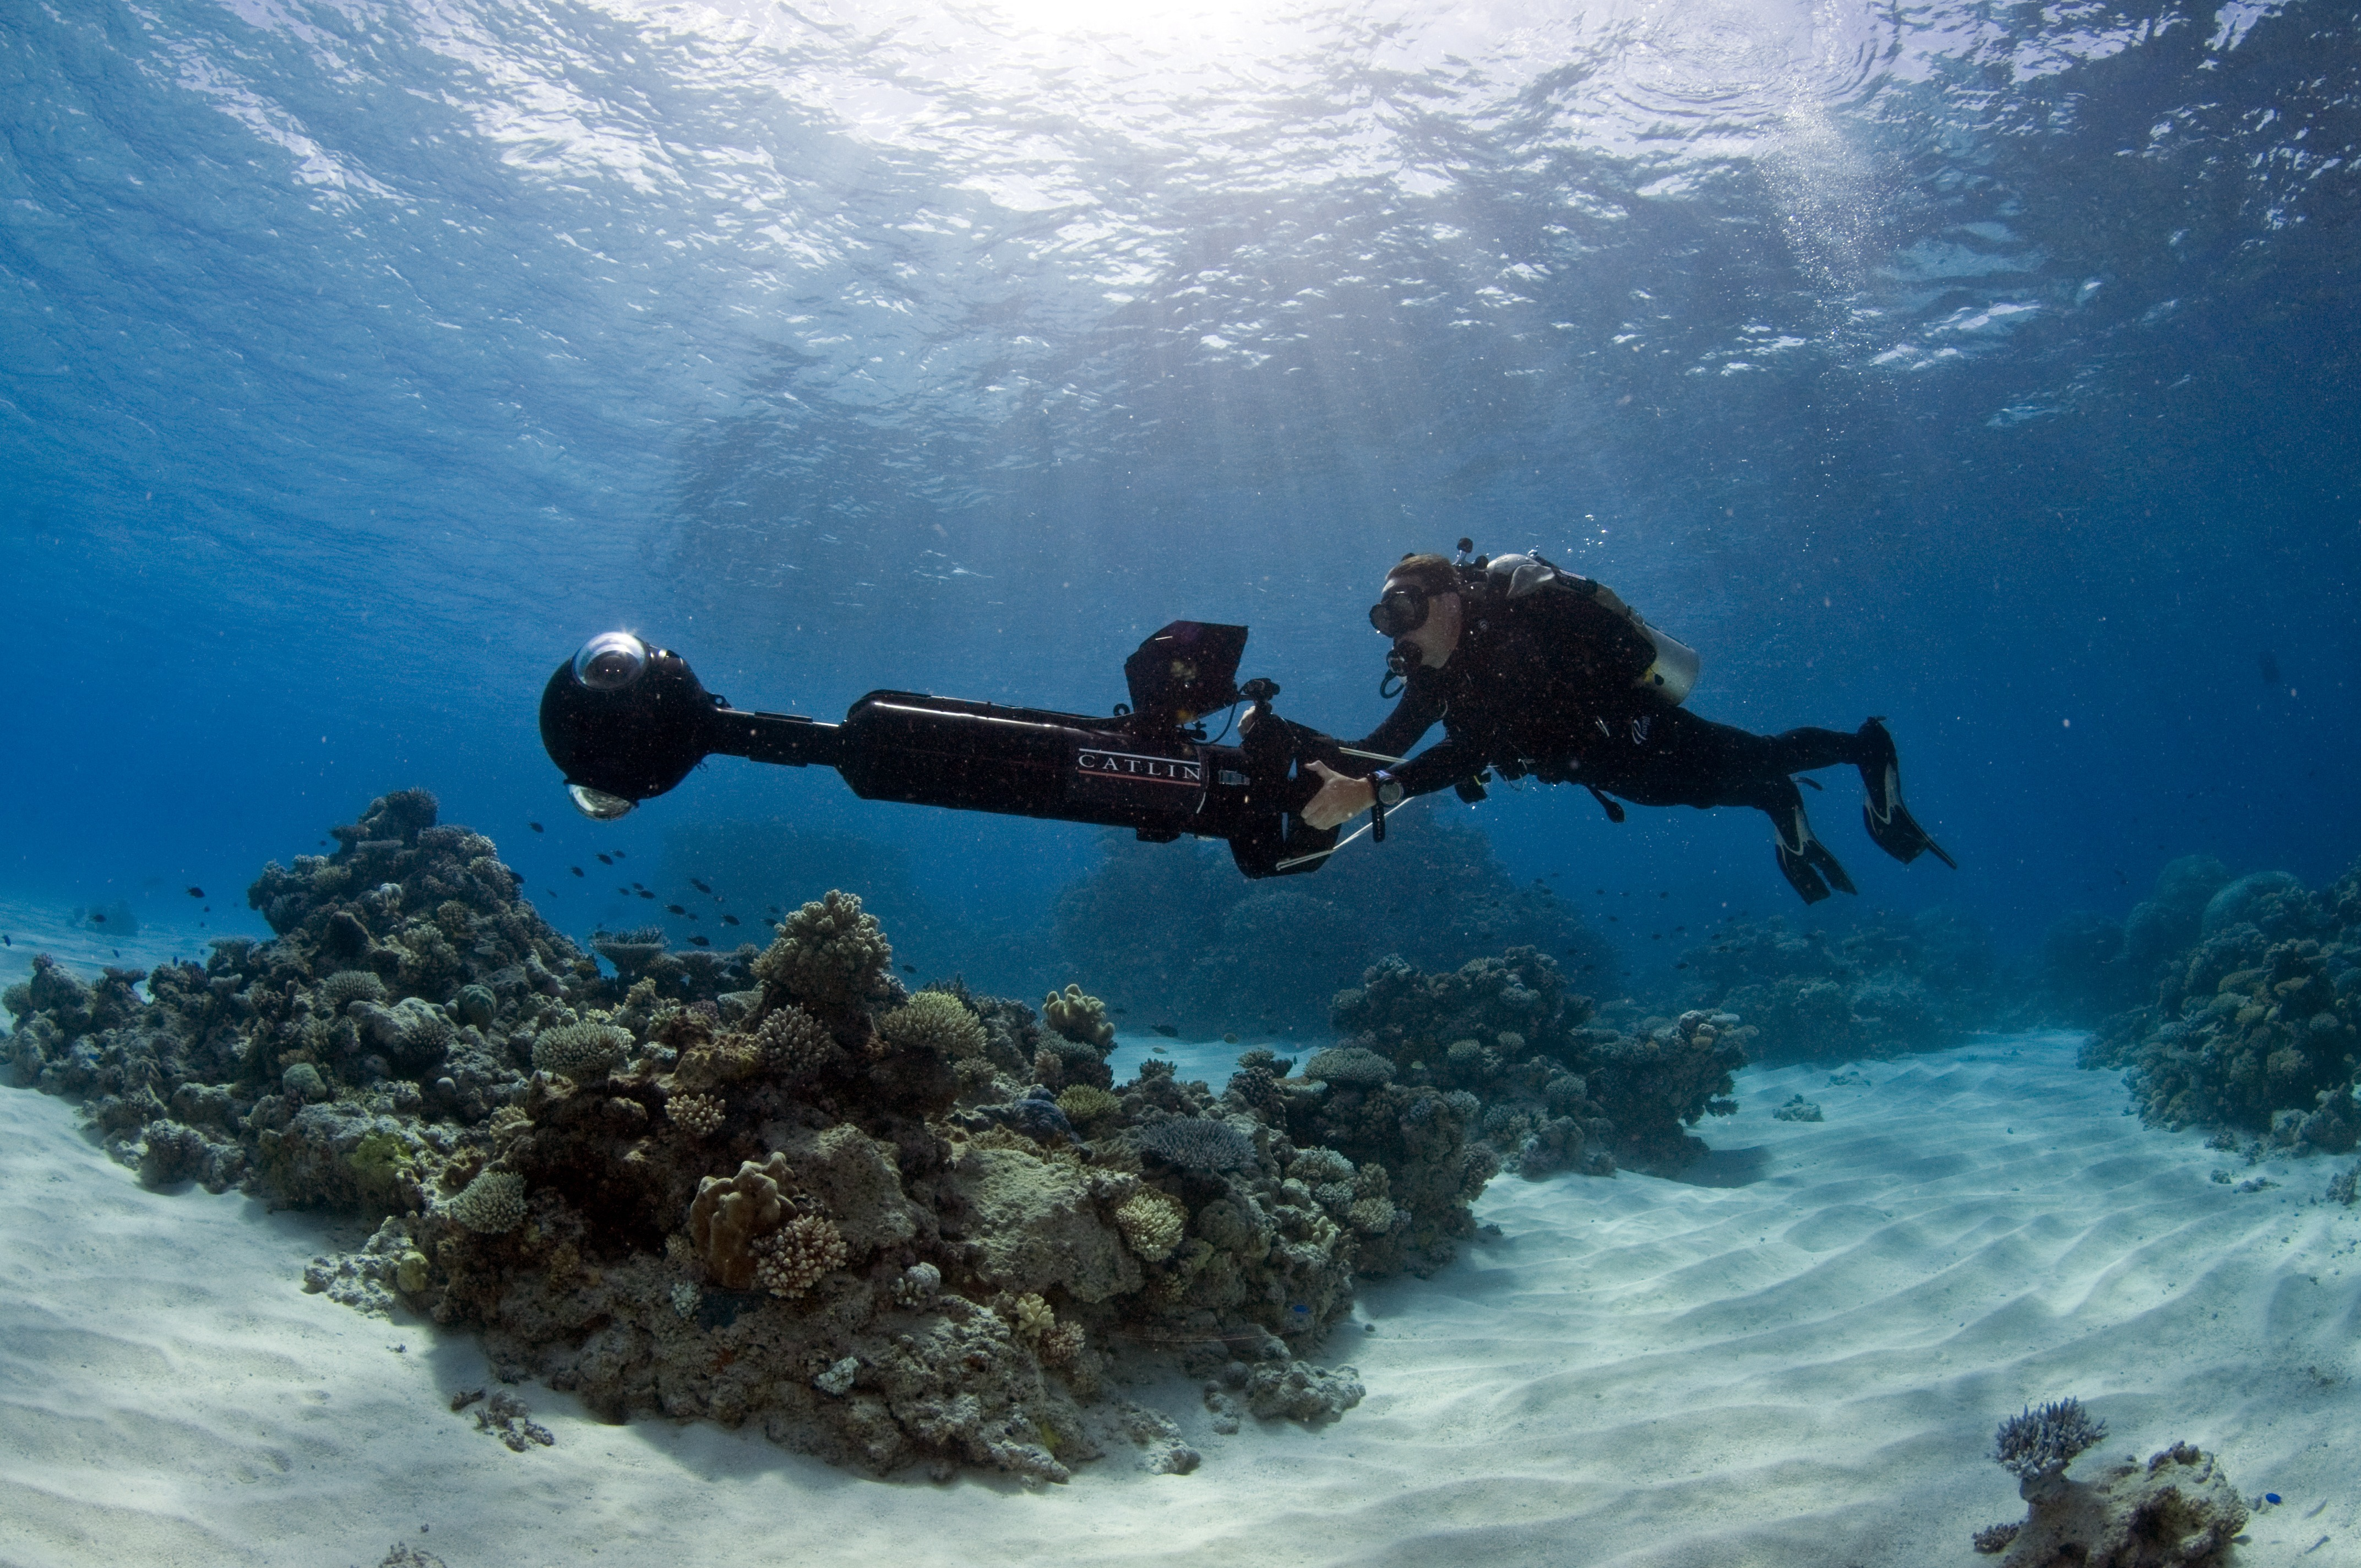 The SVII camera can take hundreds of photos of coral reefs, turning them into 360-degree panoramas